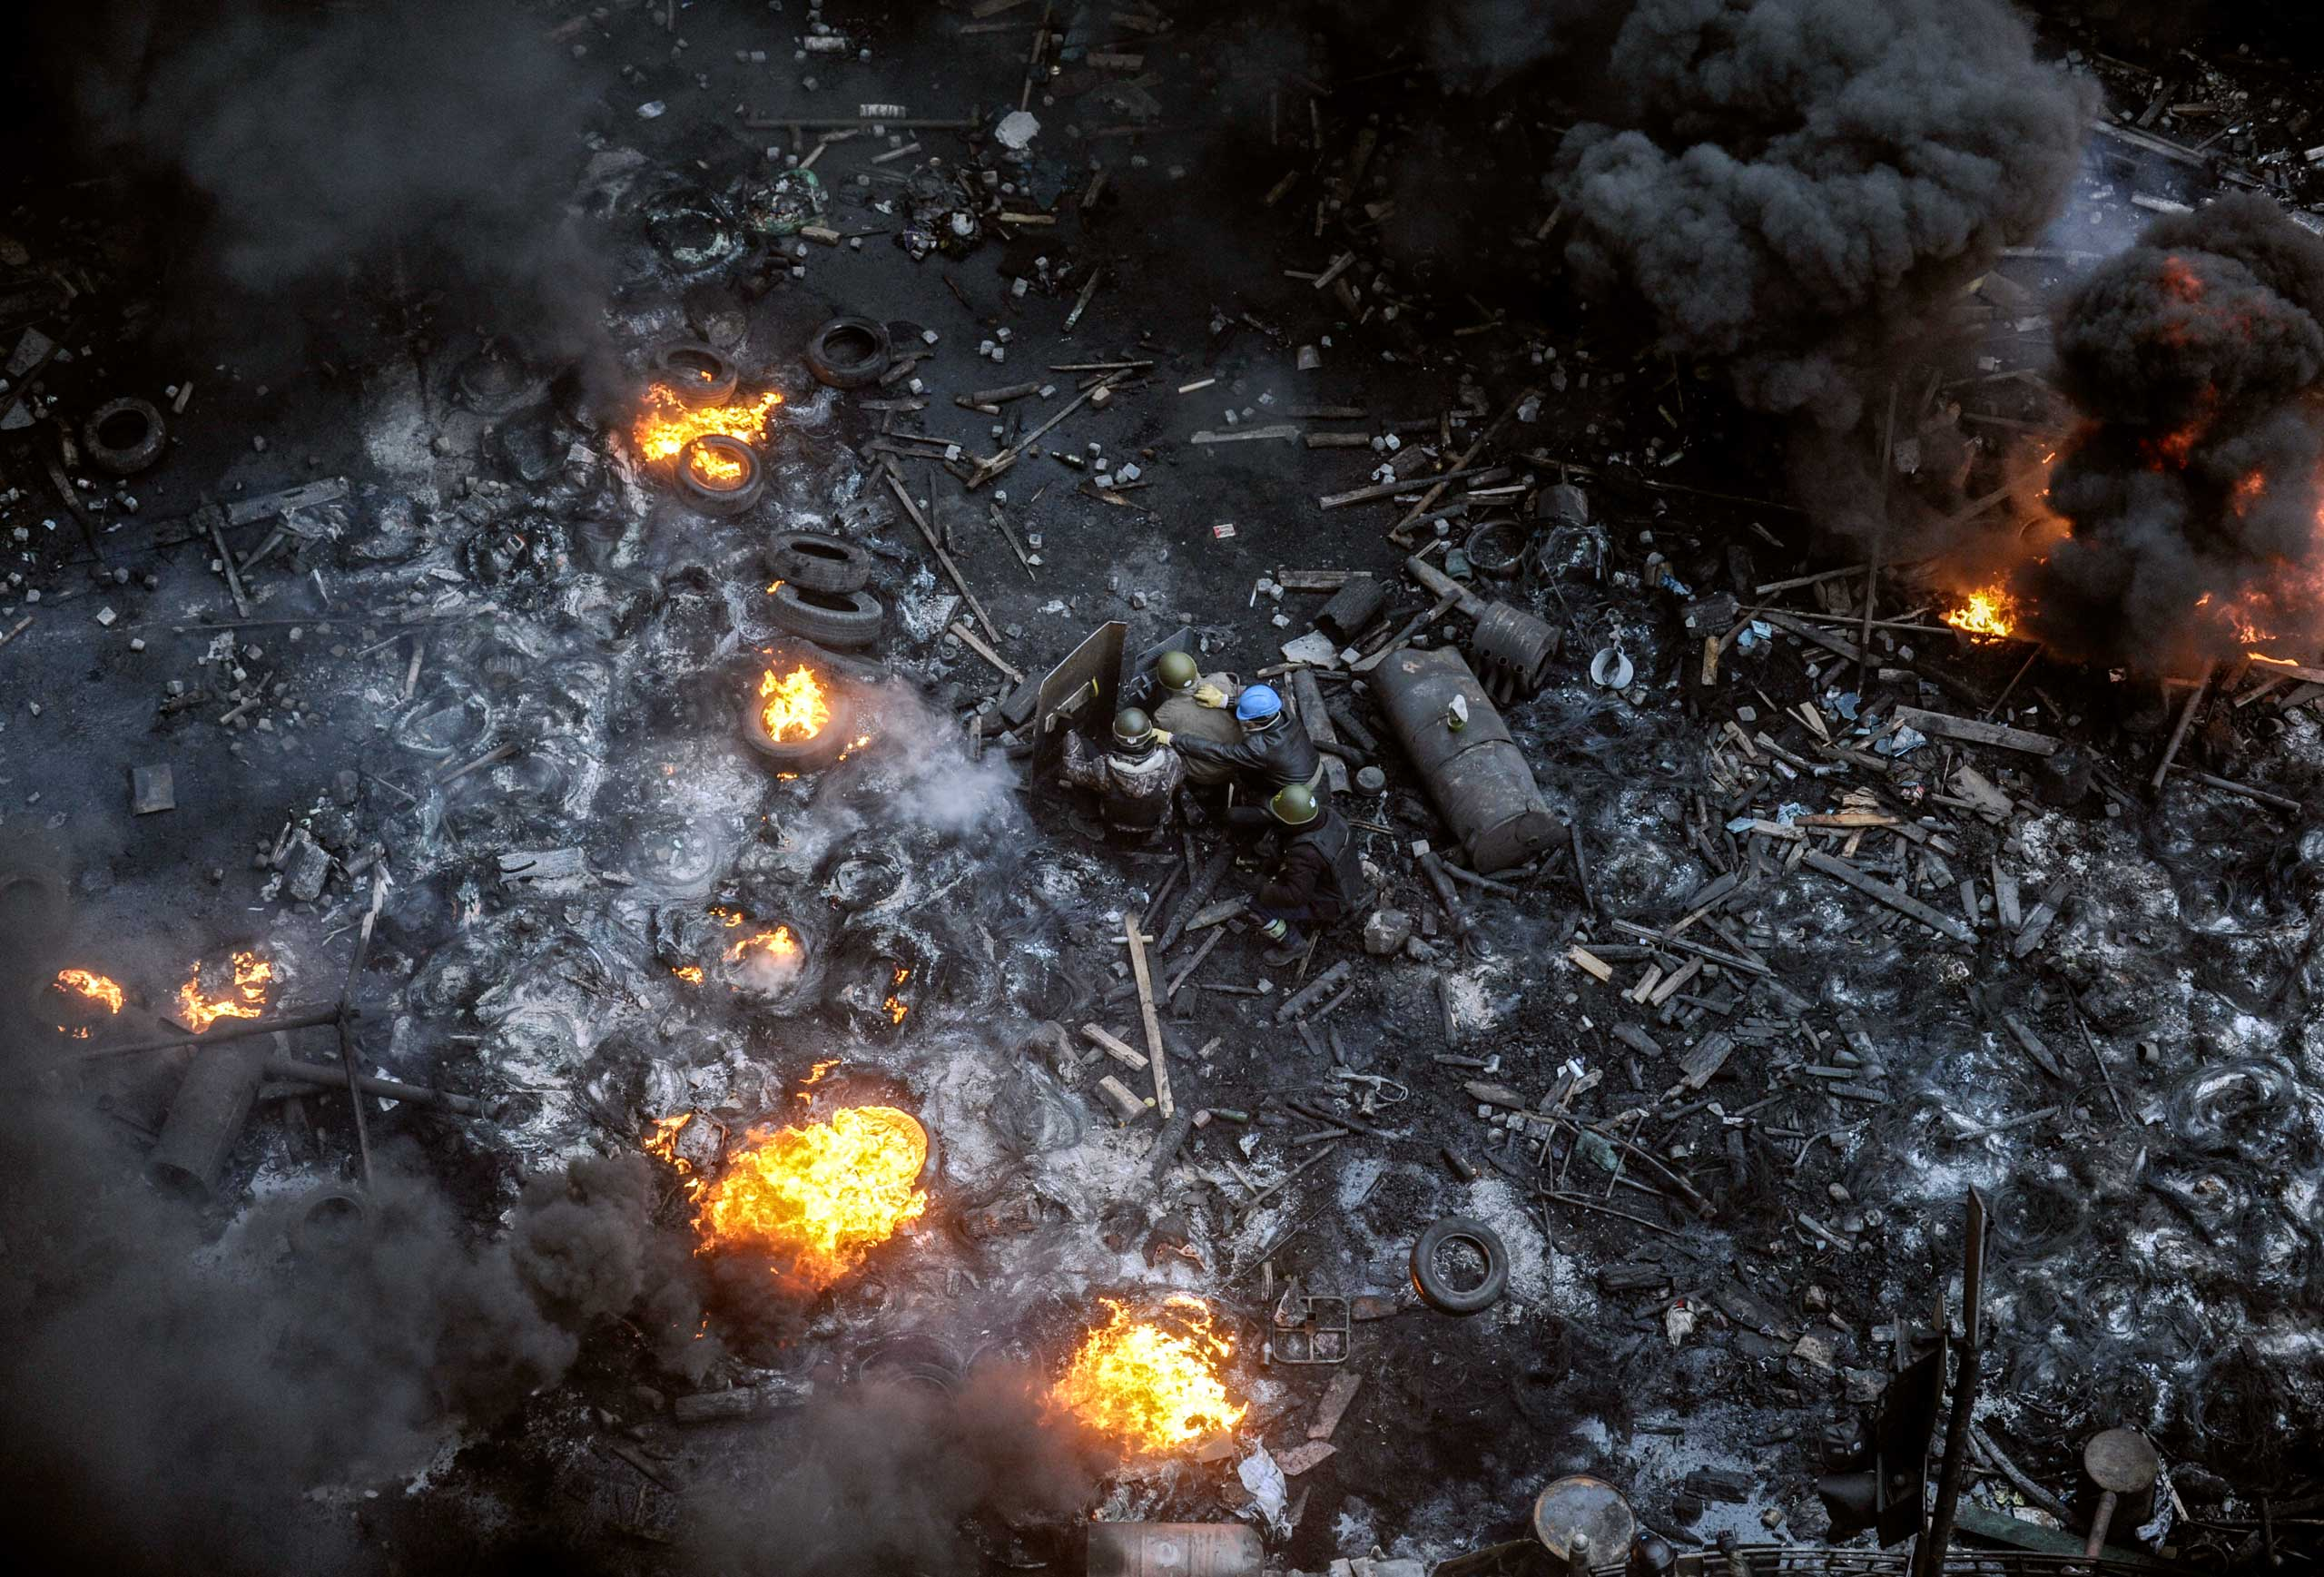 Ukraine: Euromaidan protestsProtesters stand behind burning barricades during a face-off against police on Feb. 20, 2014 on Independence Square in Kiev.